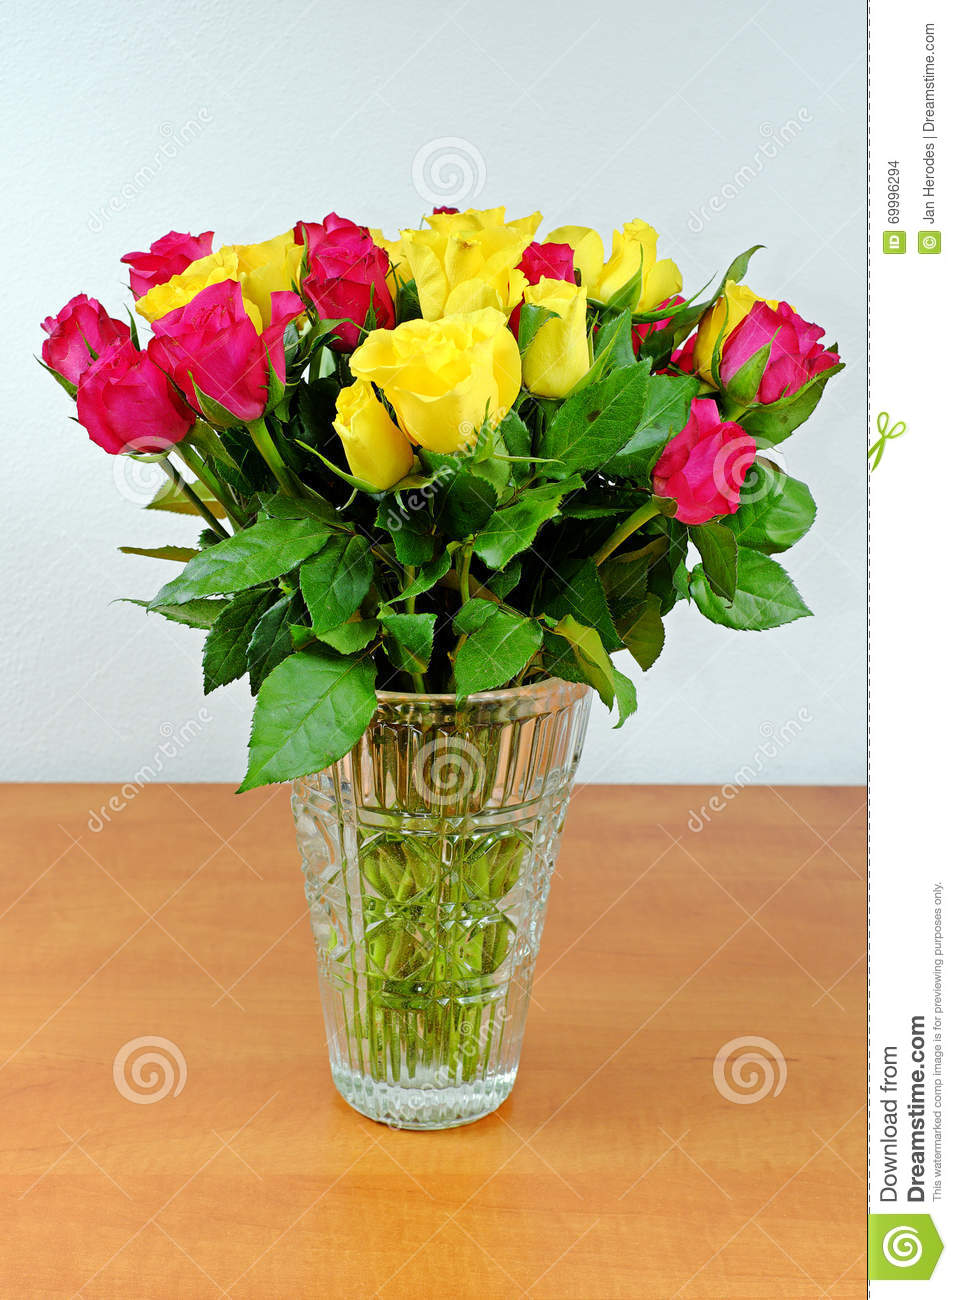 Bouquet Of Yellow And Pink Roses In A Glass Vase Stock Photo Image